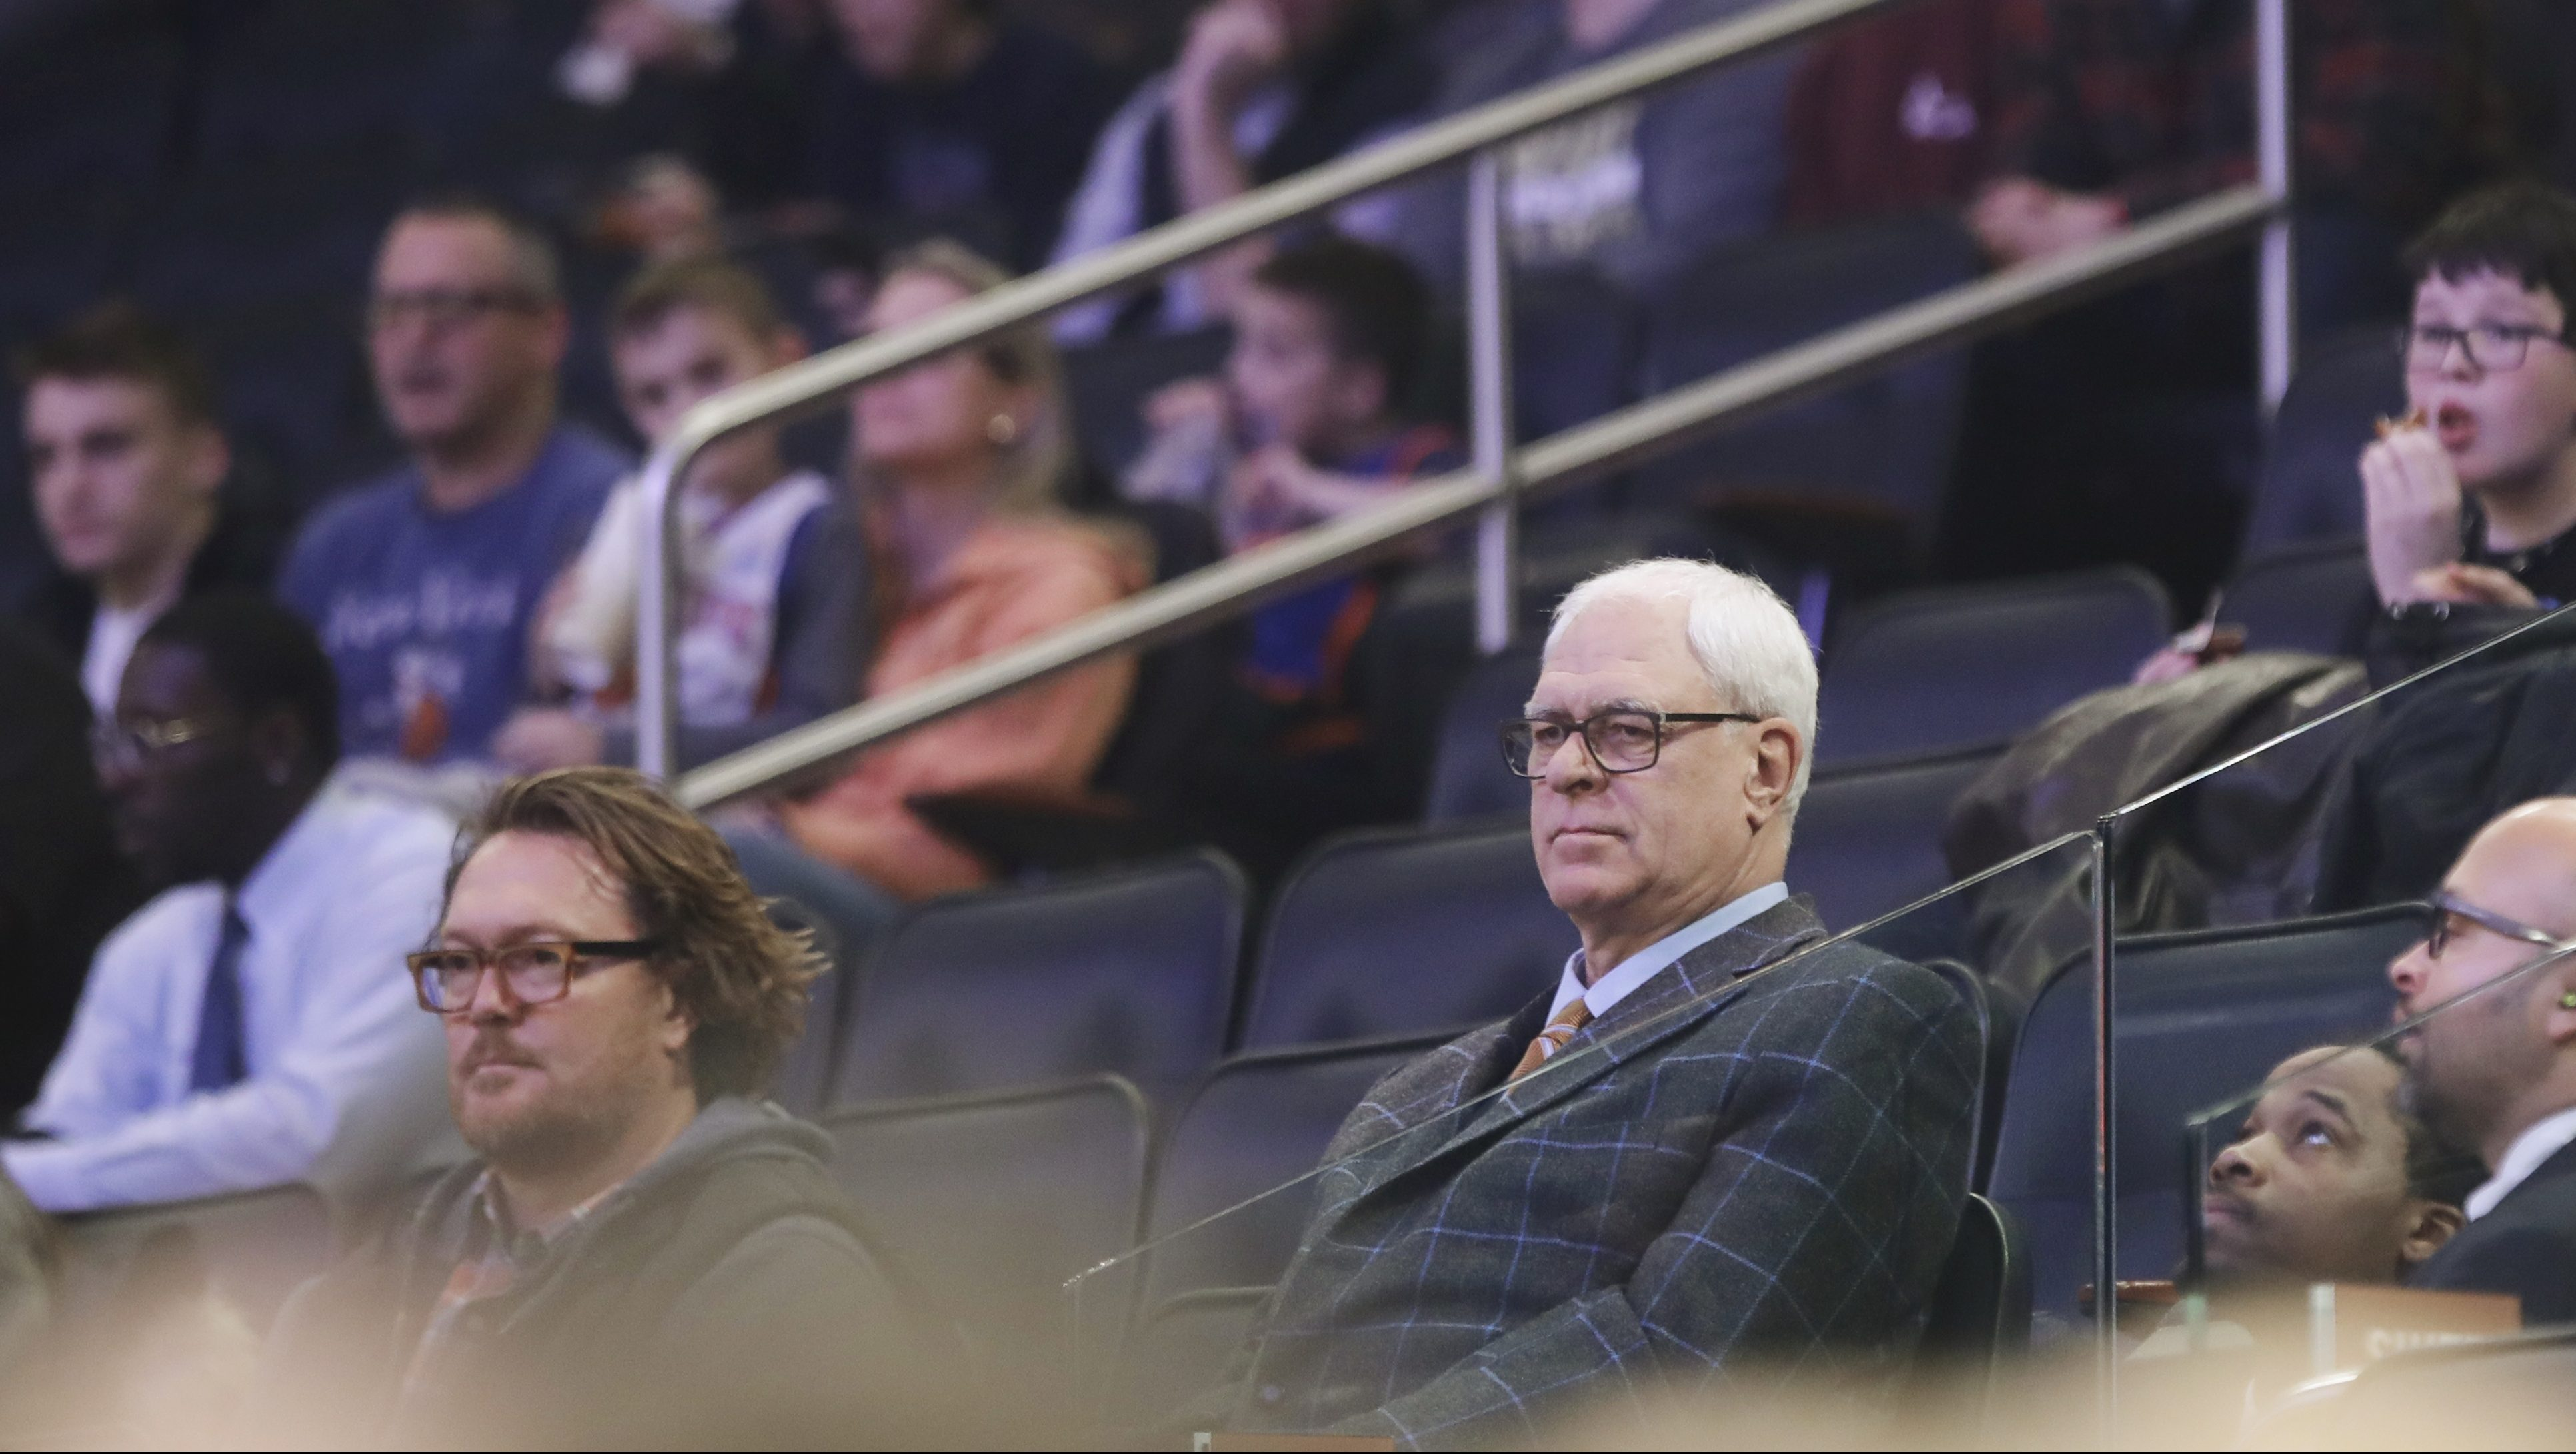 New York Knicks president Phil Jackson watches during the first half of an NBA basketball game against the Indiana Pacers Tuesday, March 14, 2017, in New York.